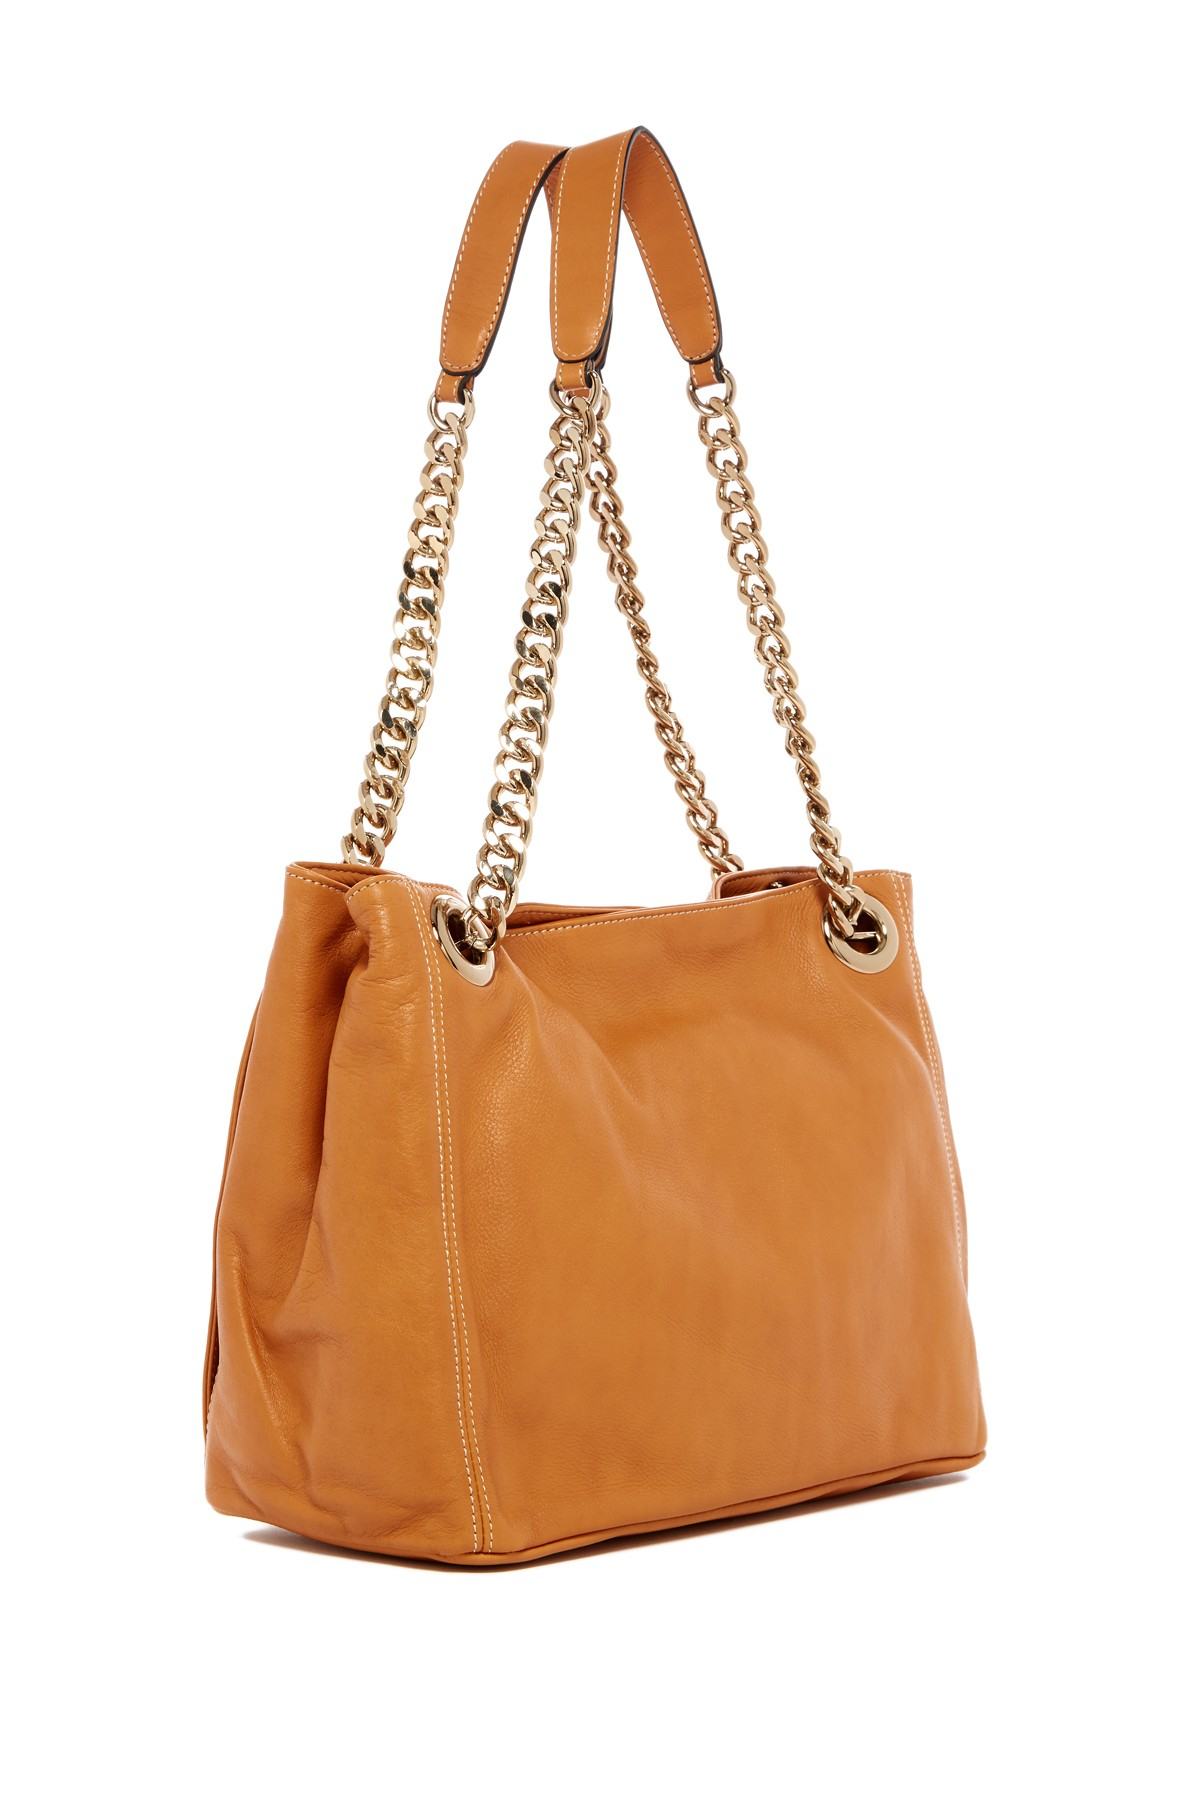 lyst valentino by mario valentino luisa 2 leather